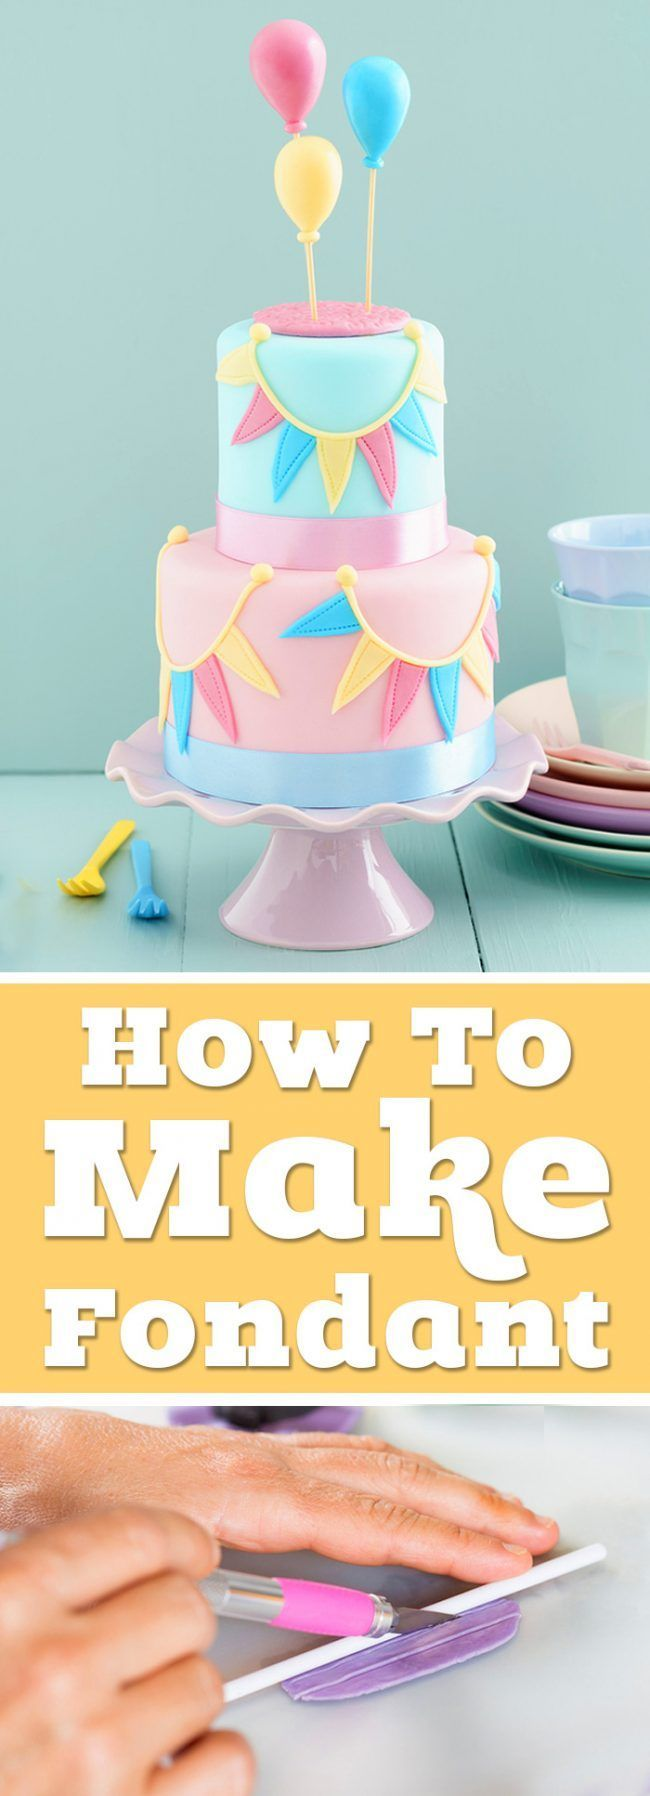 How To Make Fondant Icing And Cake Decorating Tips Enjoy An Easy Homemade Rolled